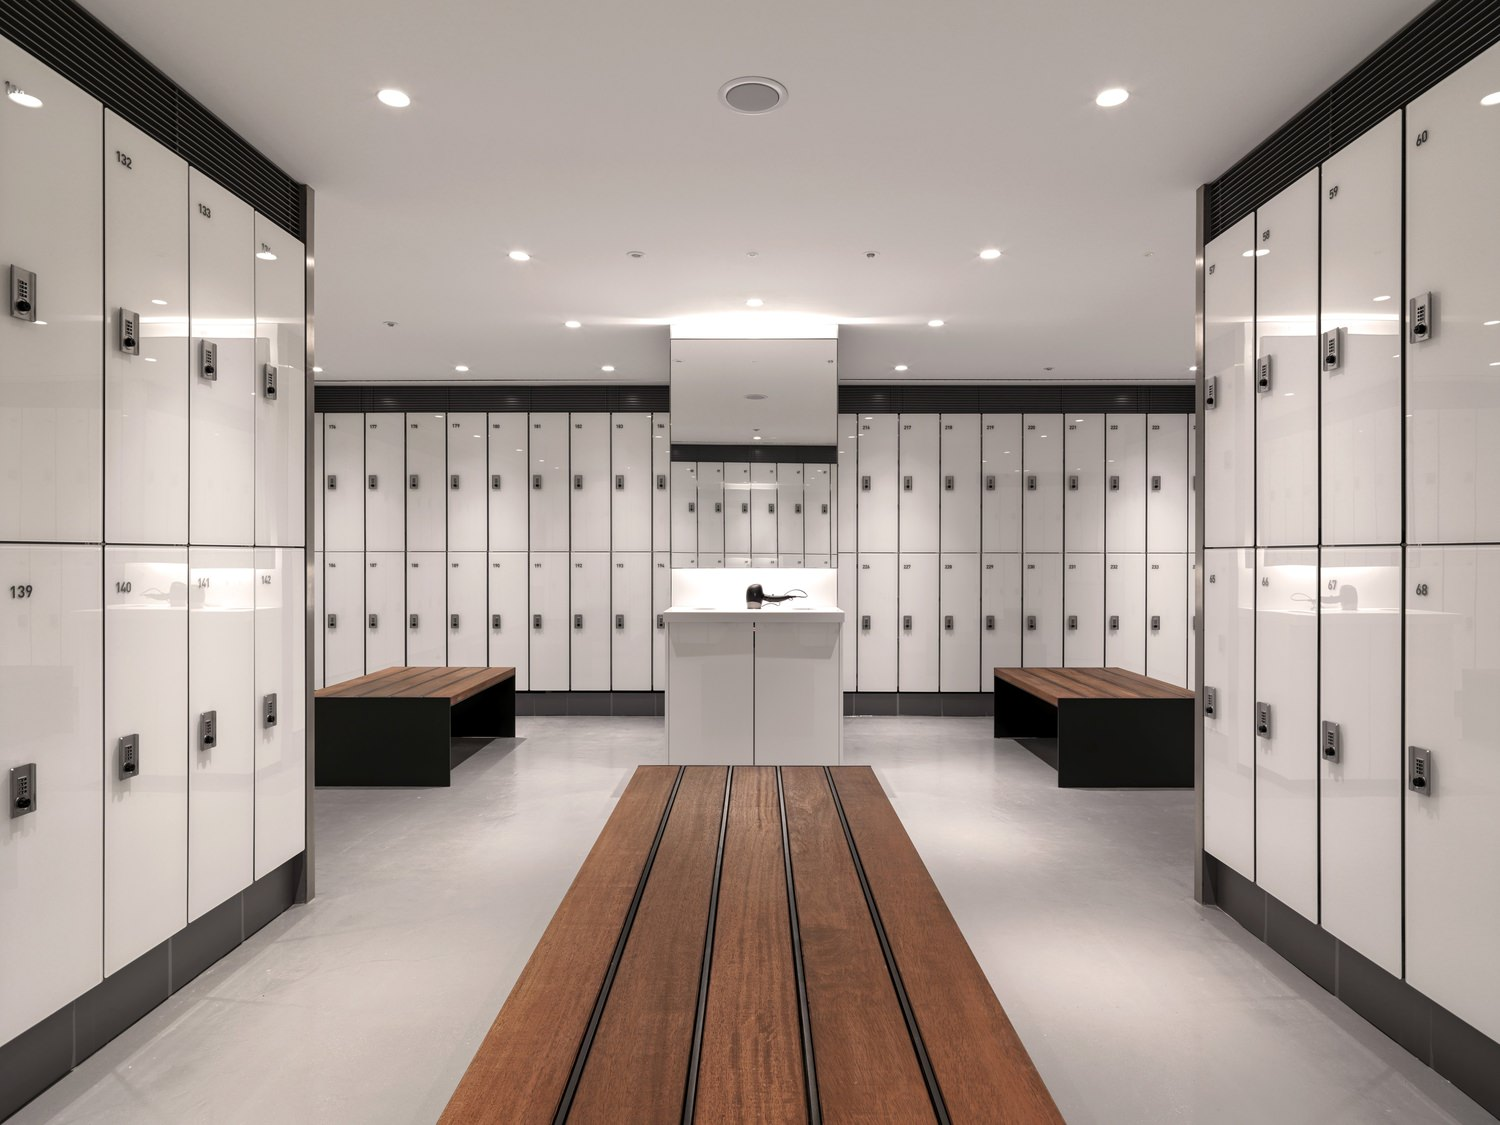 Large room with white tiles and rows of wooden benches next to white lockers cabinets.